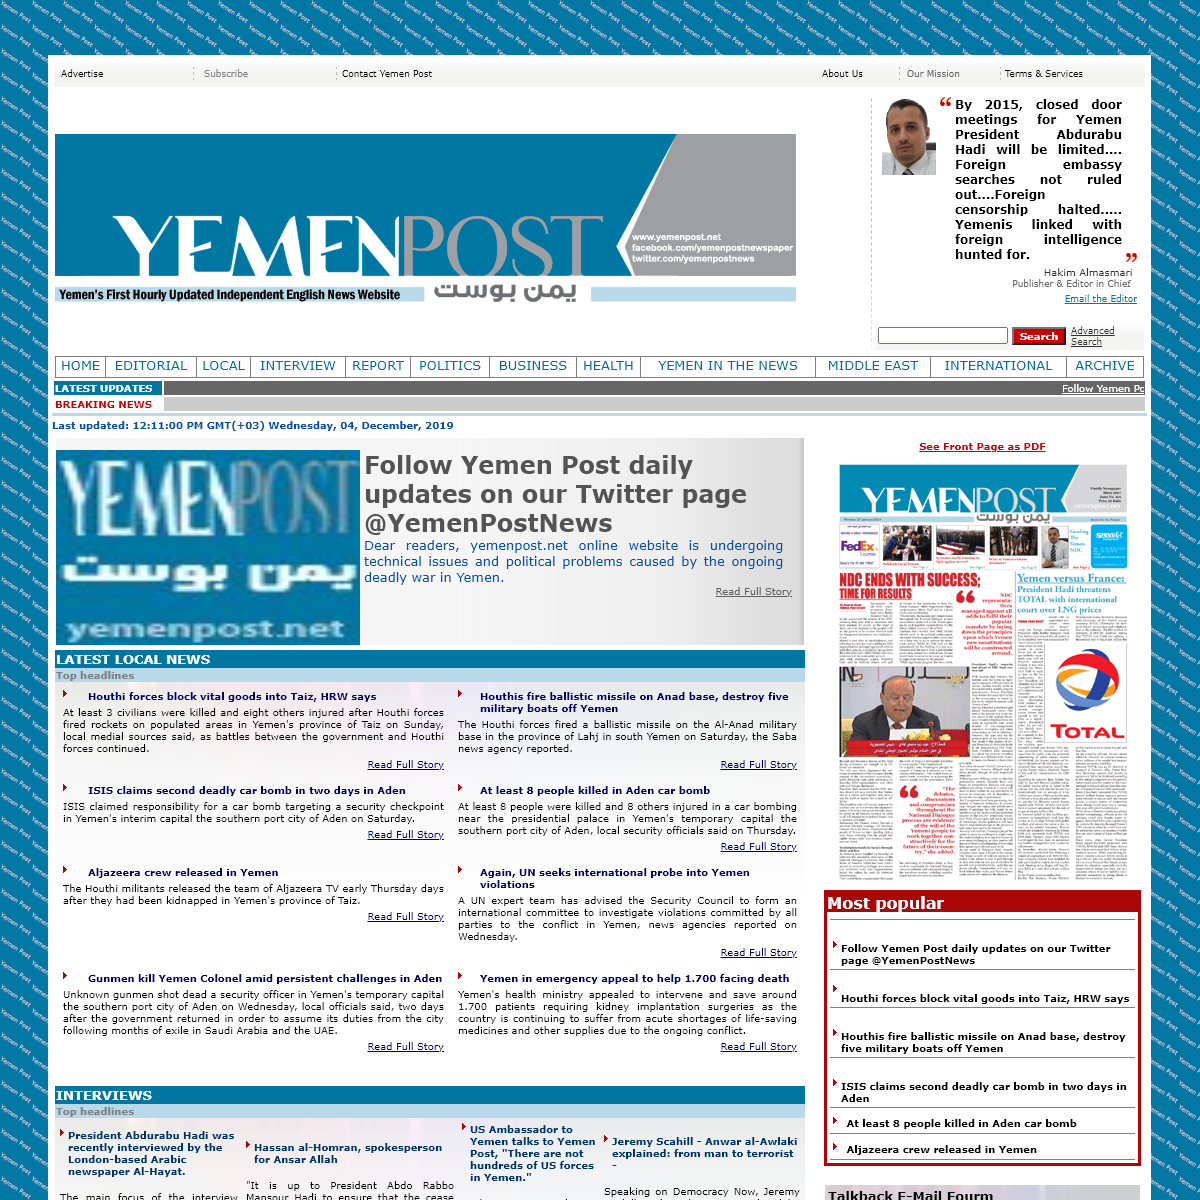 Yemen Post Newpaper online- EDITORIAL, LOCAL, INTERVIEW, REPORT, SOCIAL, BUSINESS, HEALTH, OPINION, YEMEN IN THE NEWS, MIDDL